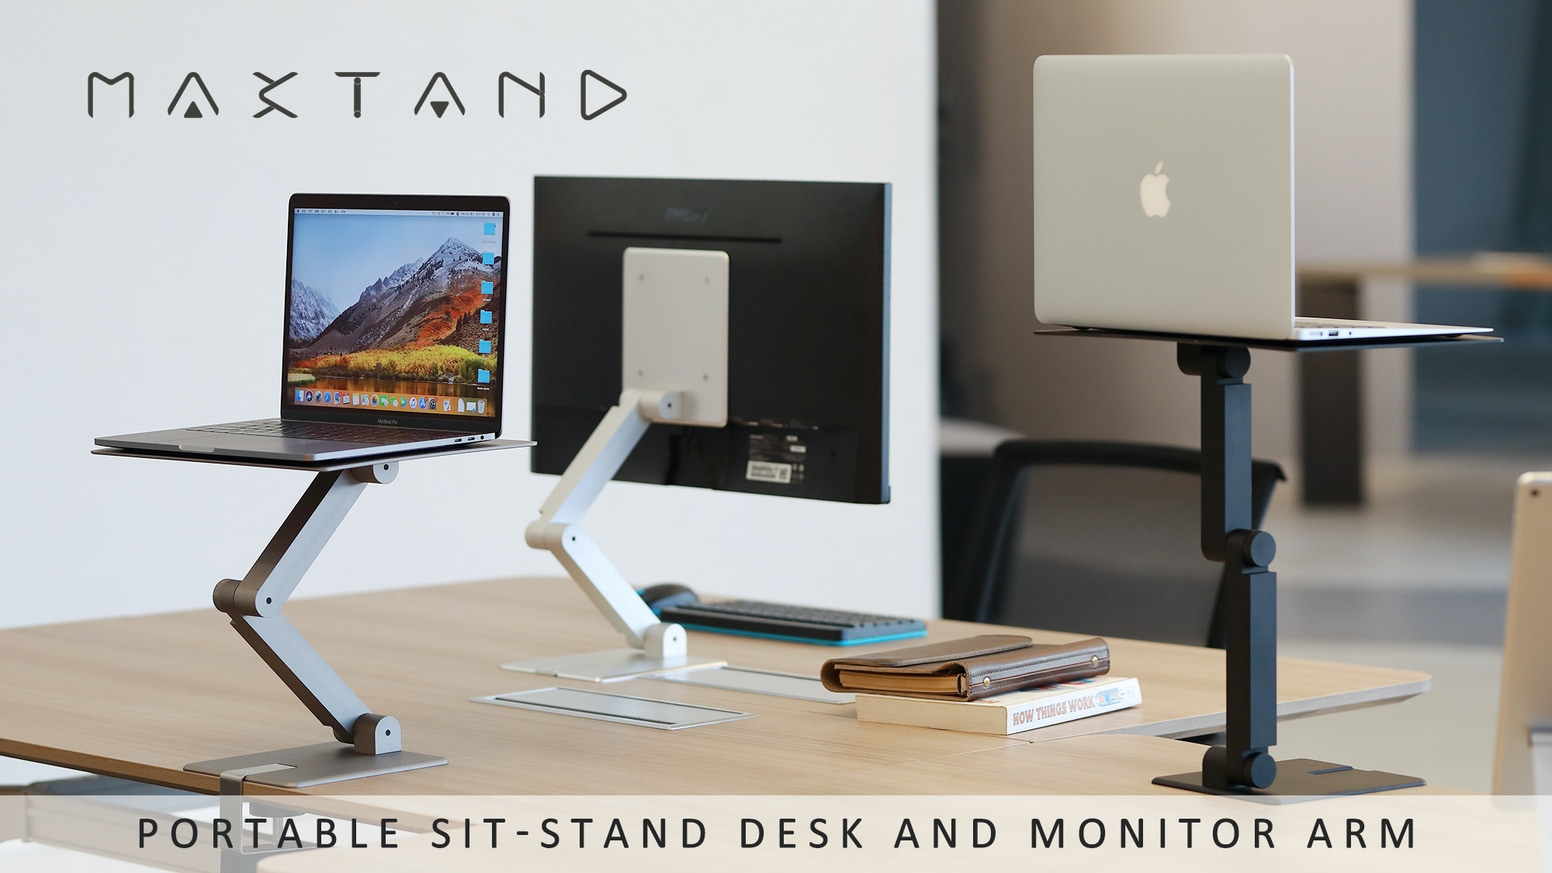 The Maxtand turns any desk or table into a height-adjustable desk of up to 15 inches without taking up a ton of space.